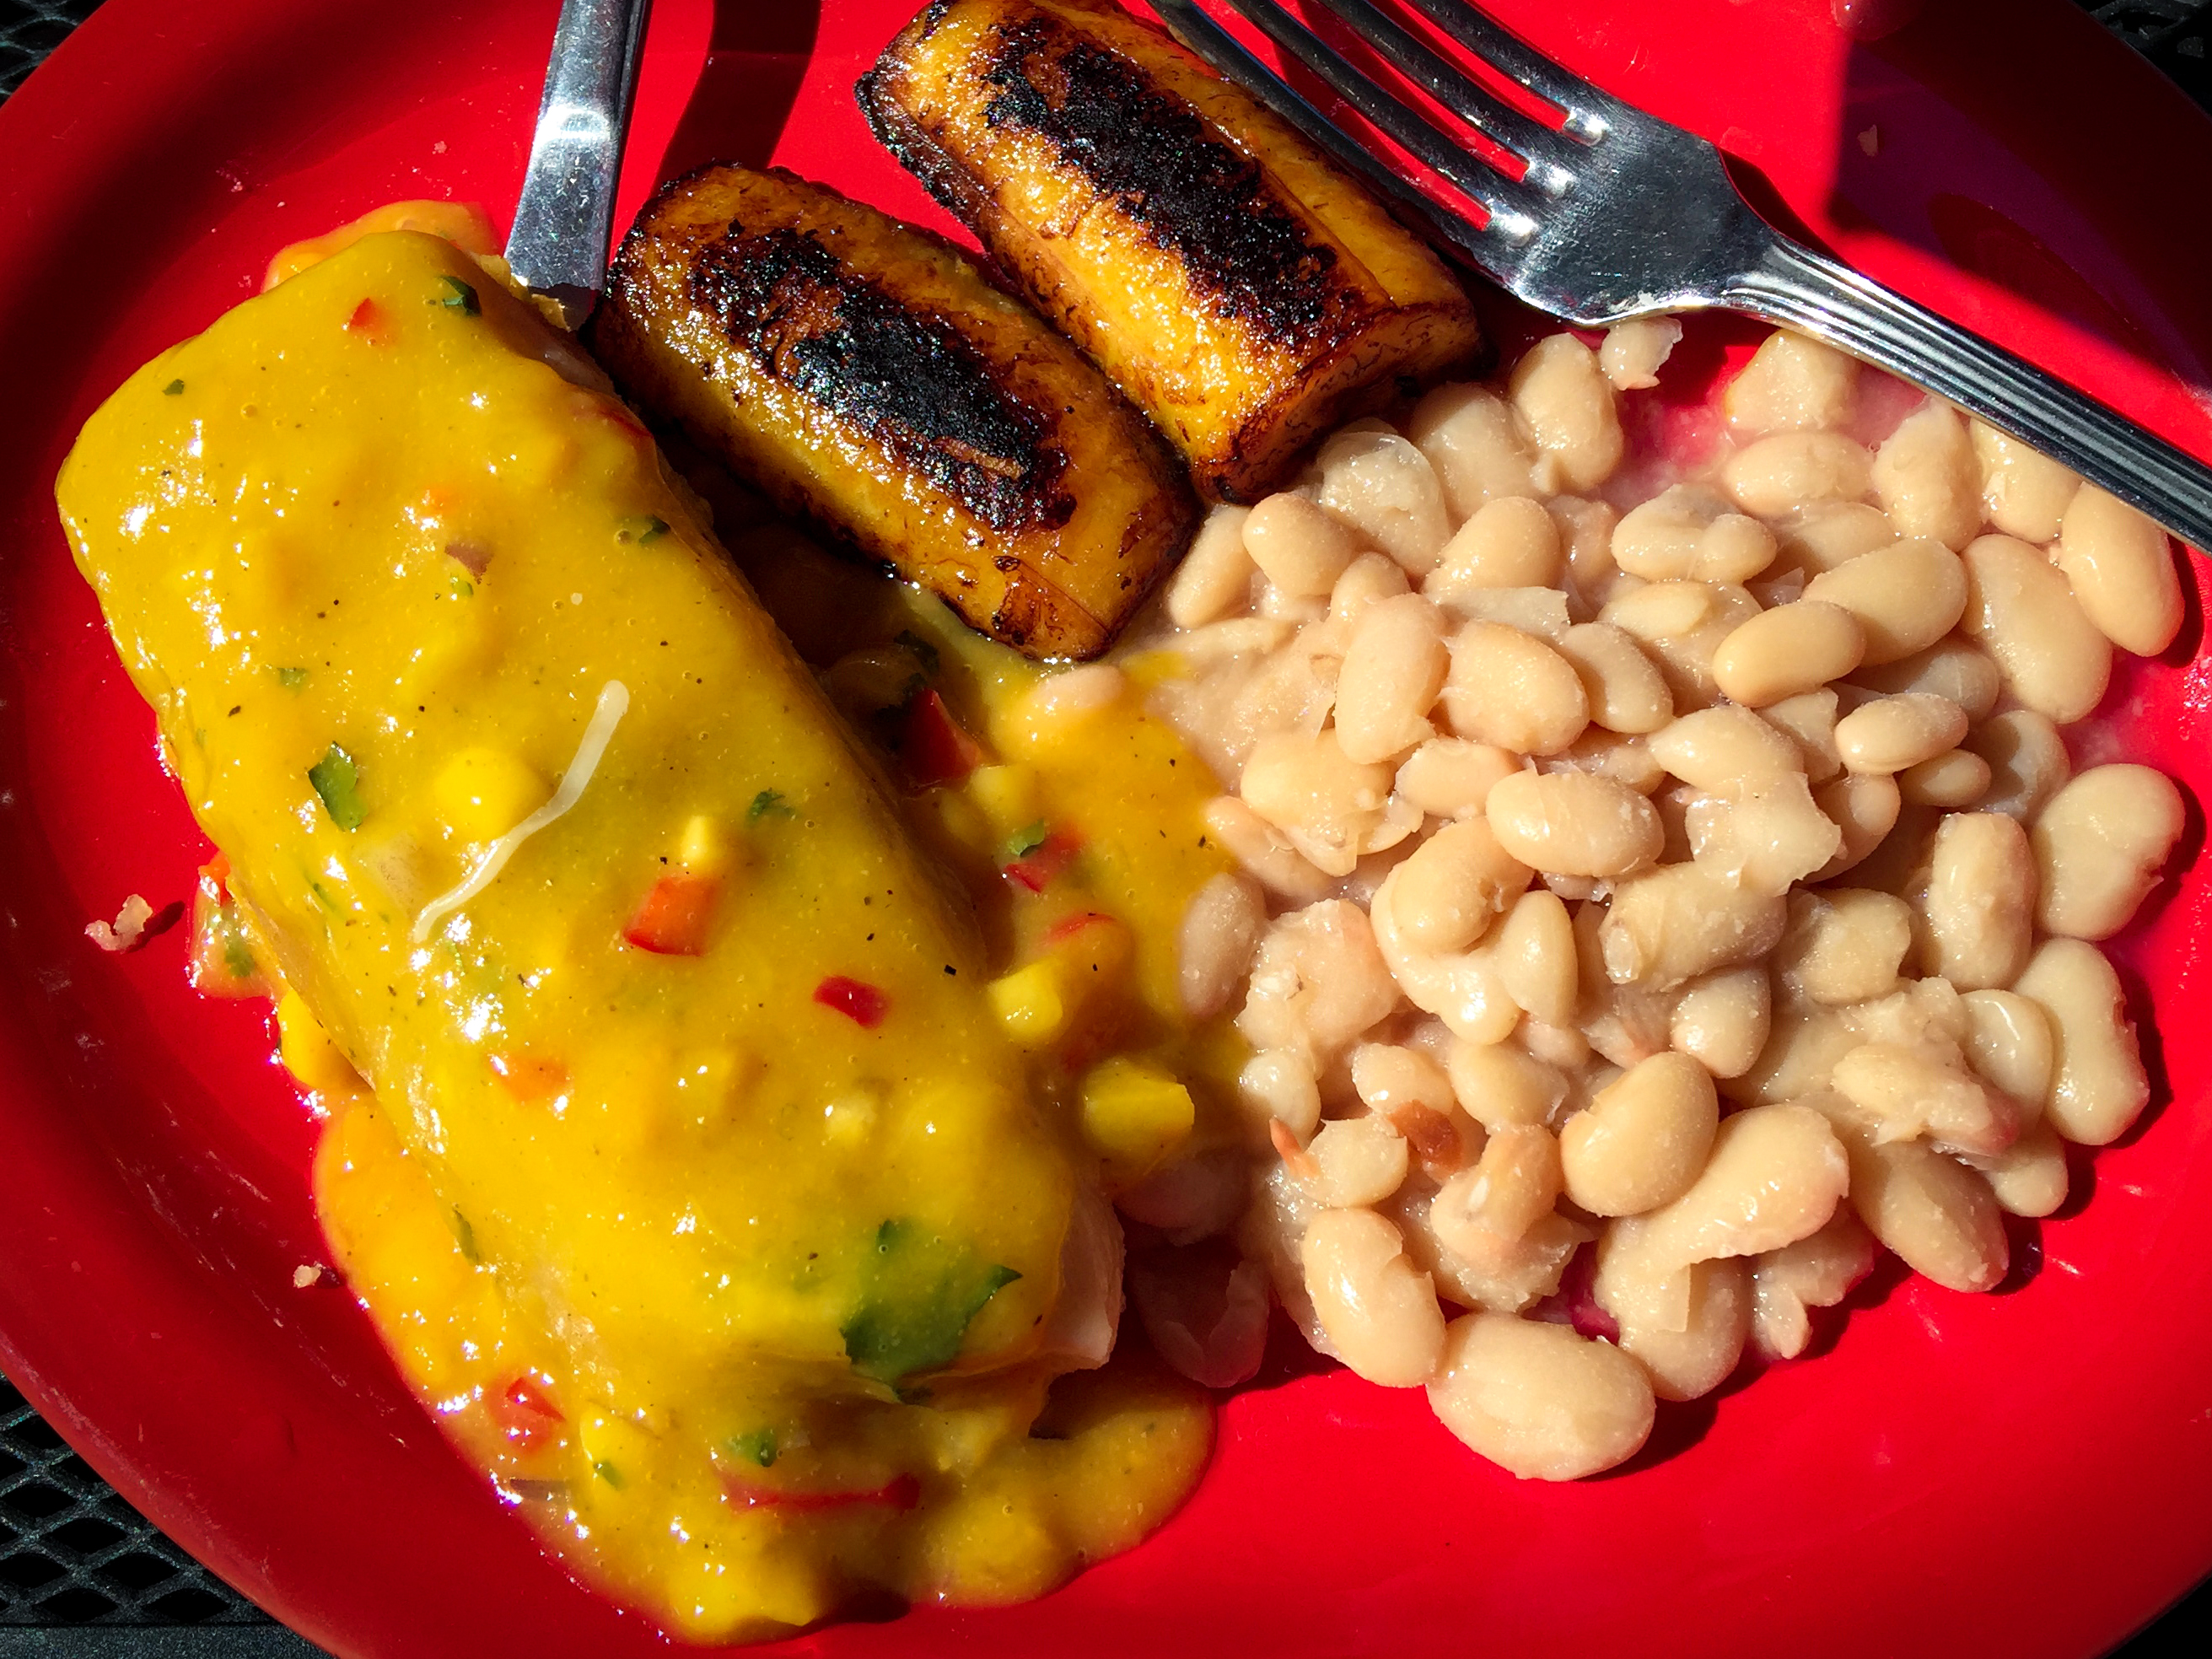 Tamale with plantains and beans at Don Julios RInconcito in Rohnert Park. Heather Irwin/PD